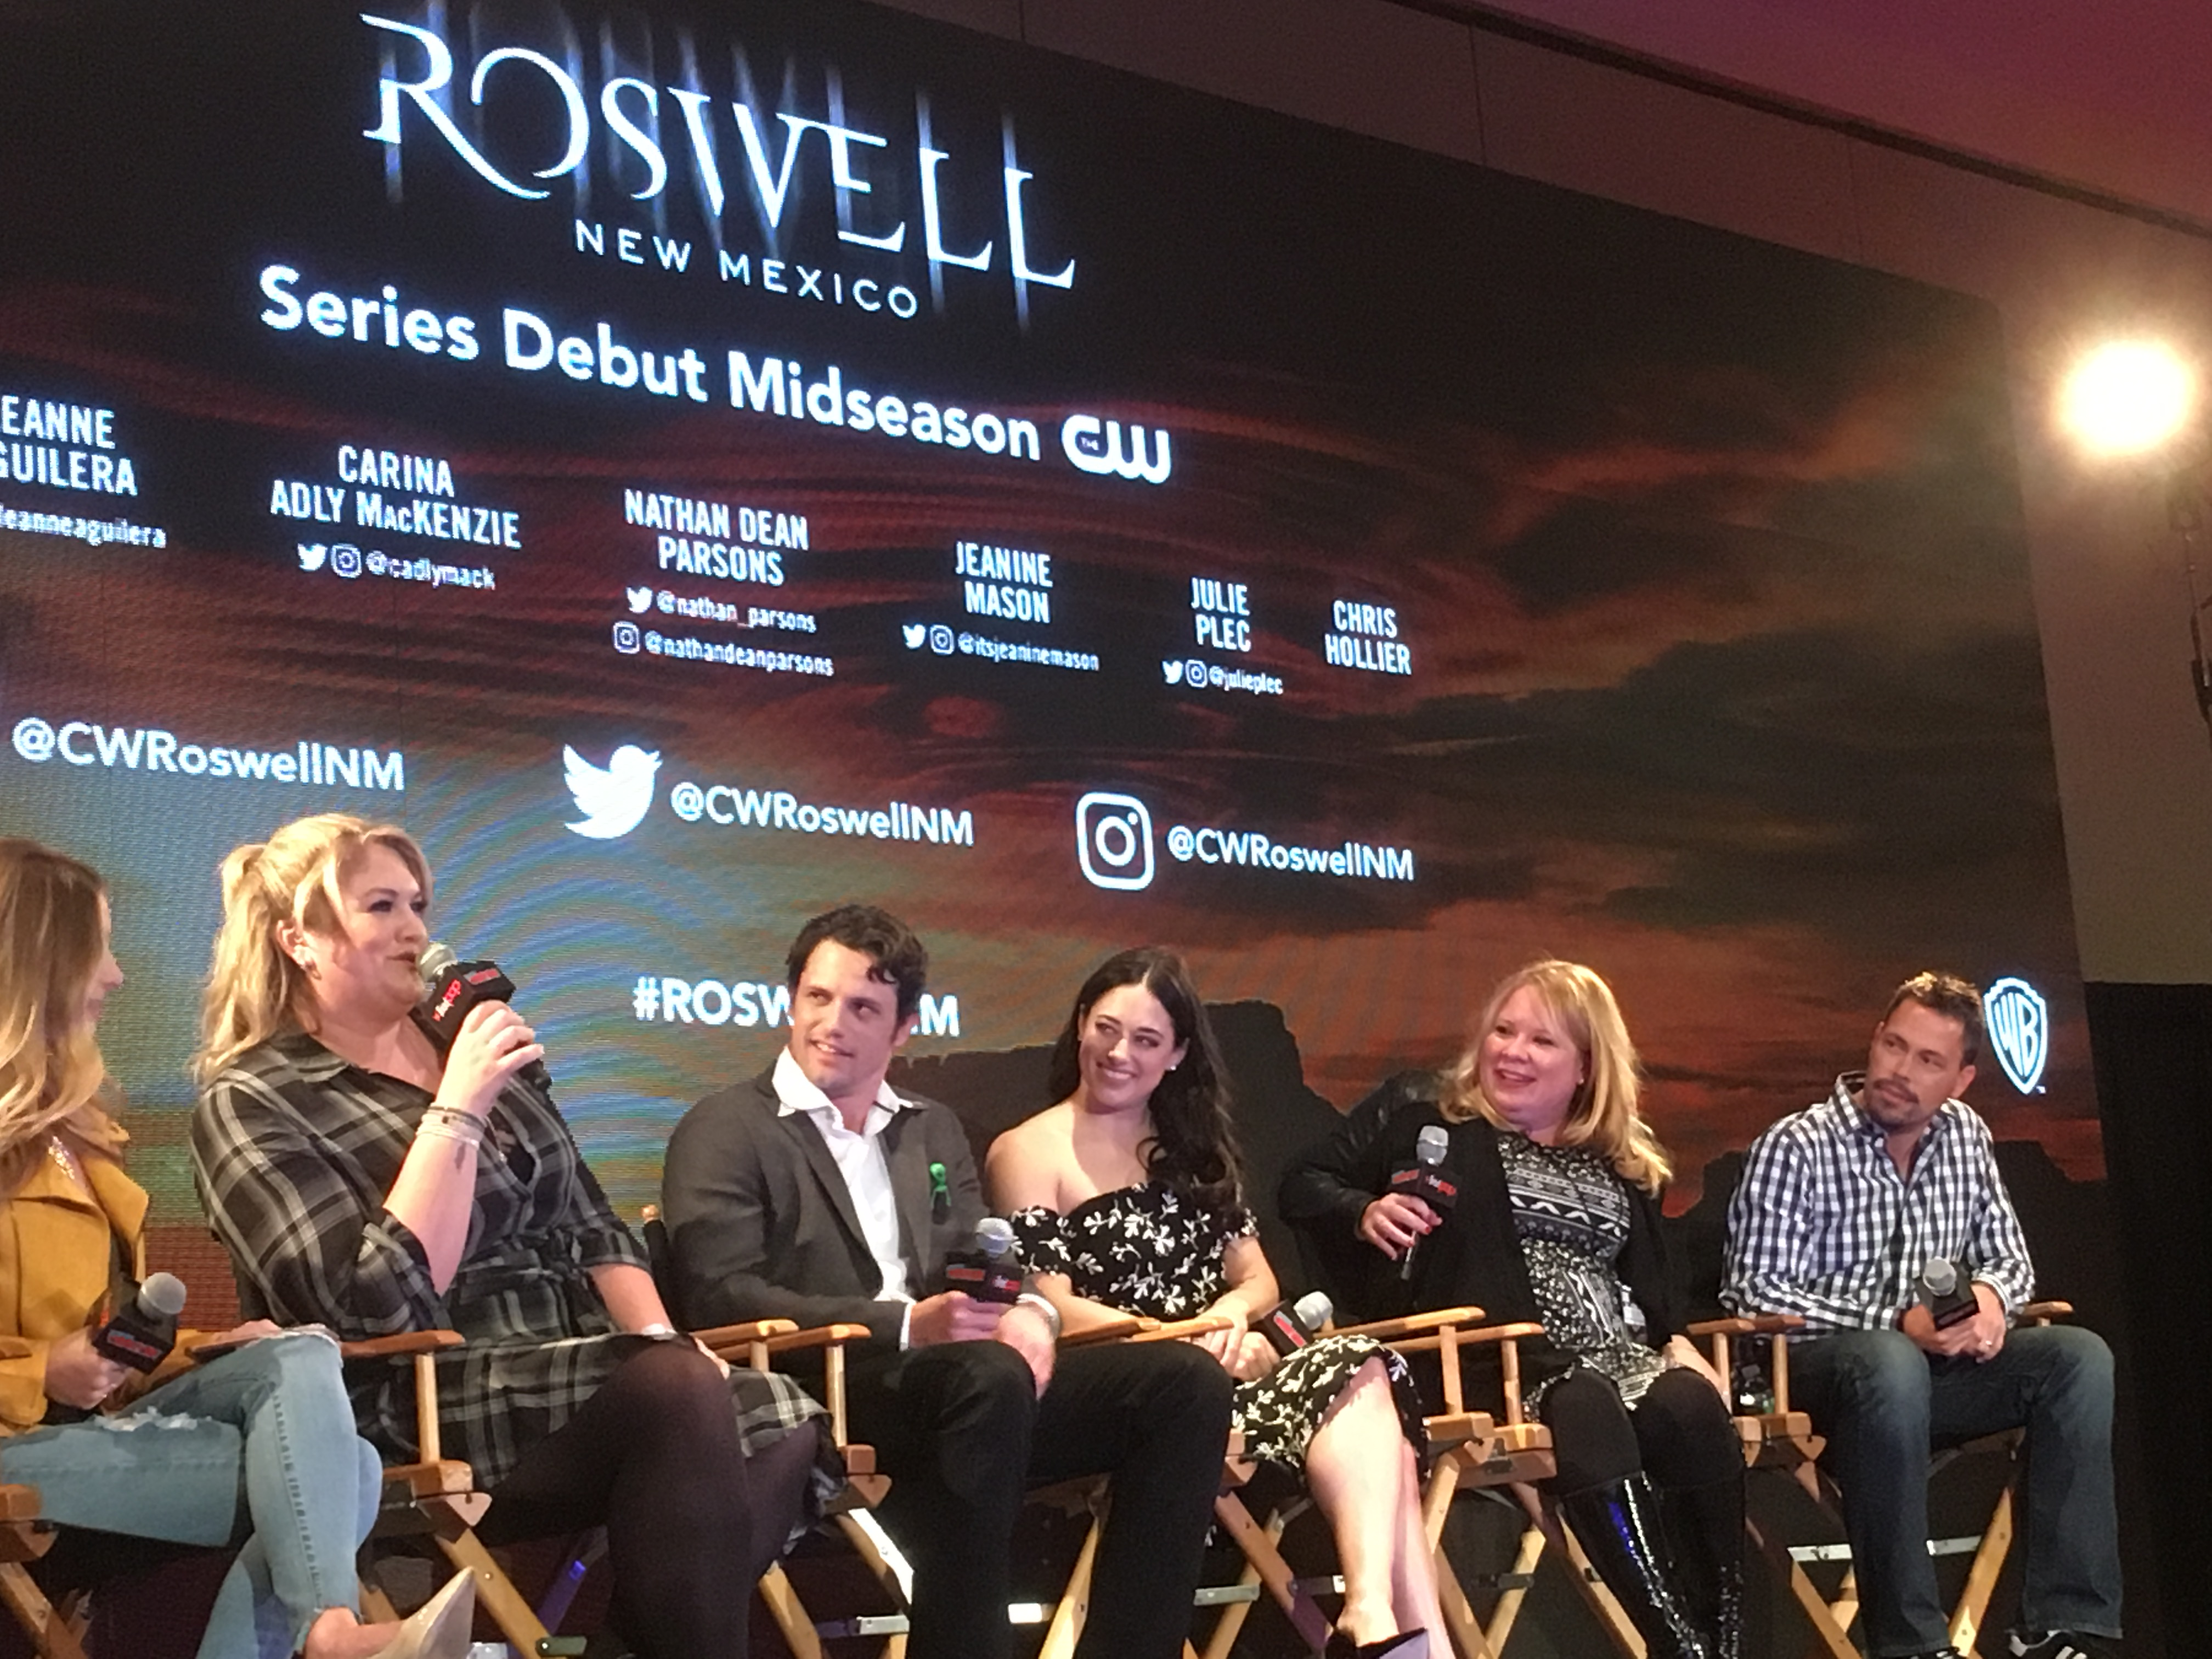 Liz and Max are back! 'Roswell, New Mexico' premieres at NYCC 2018